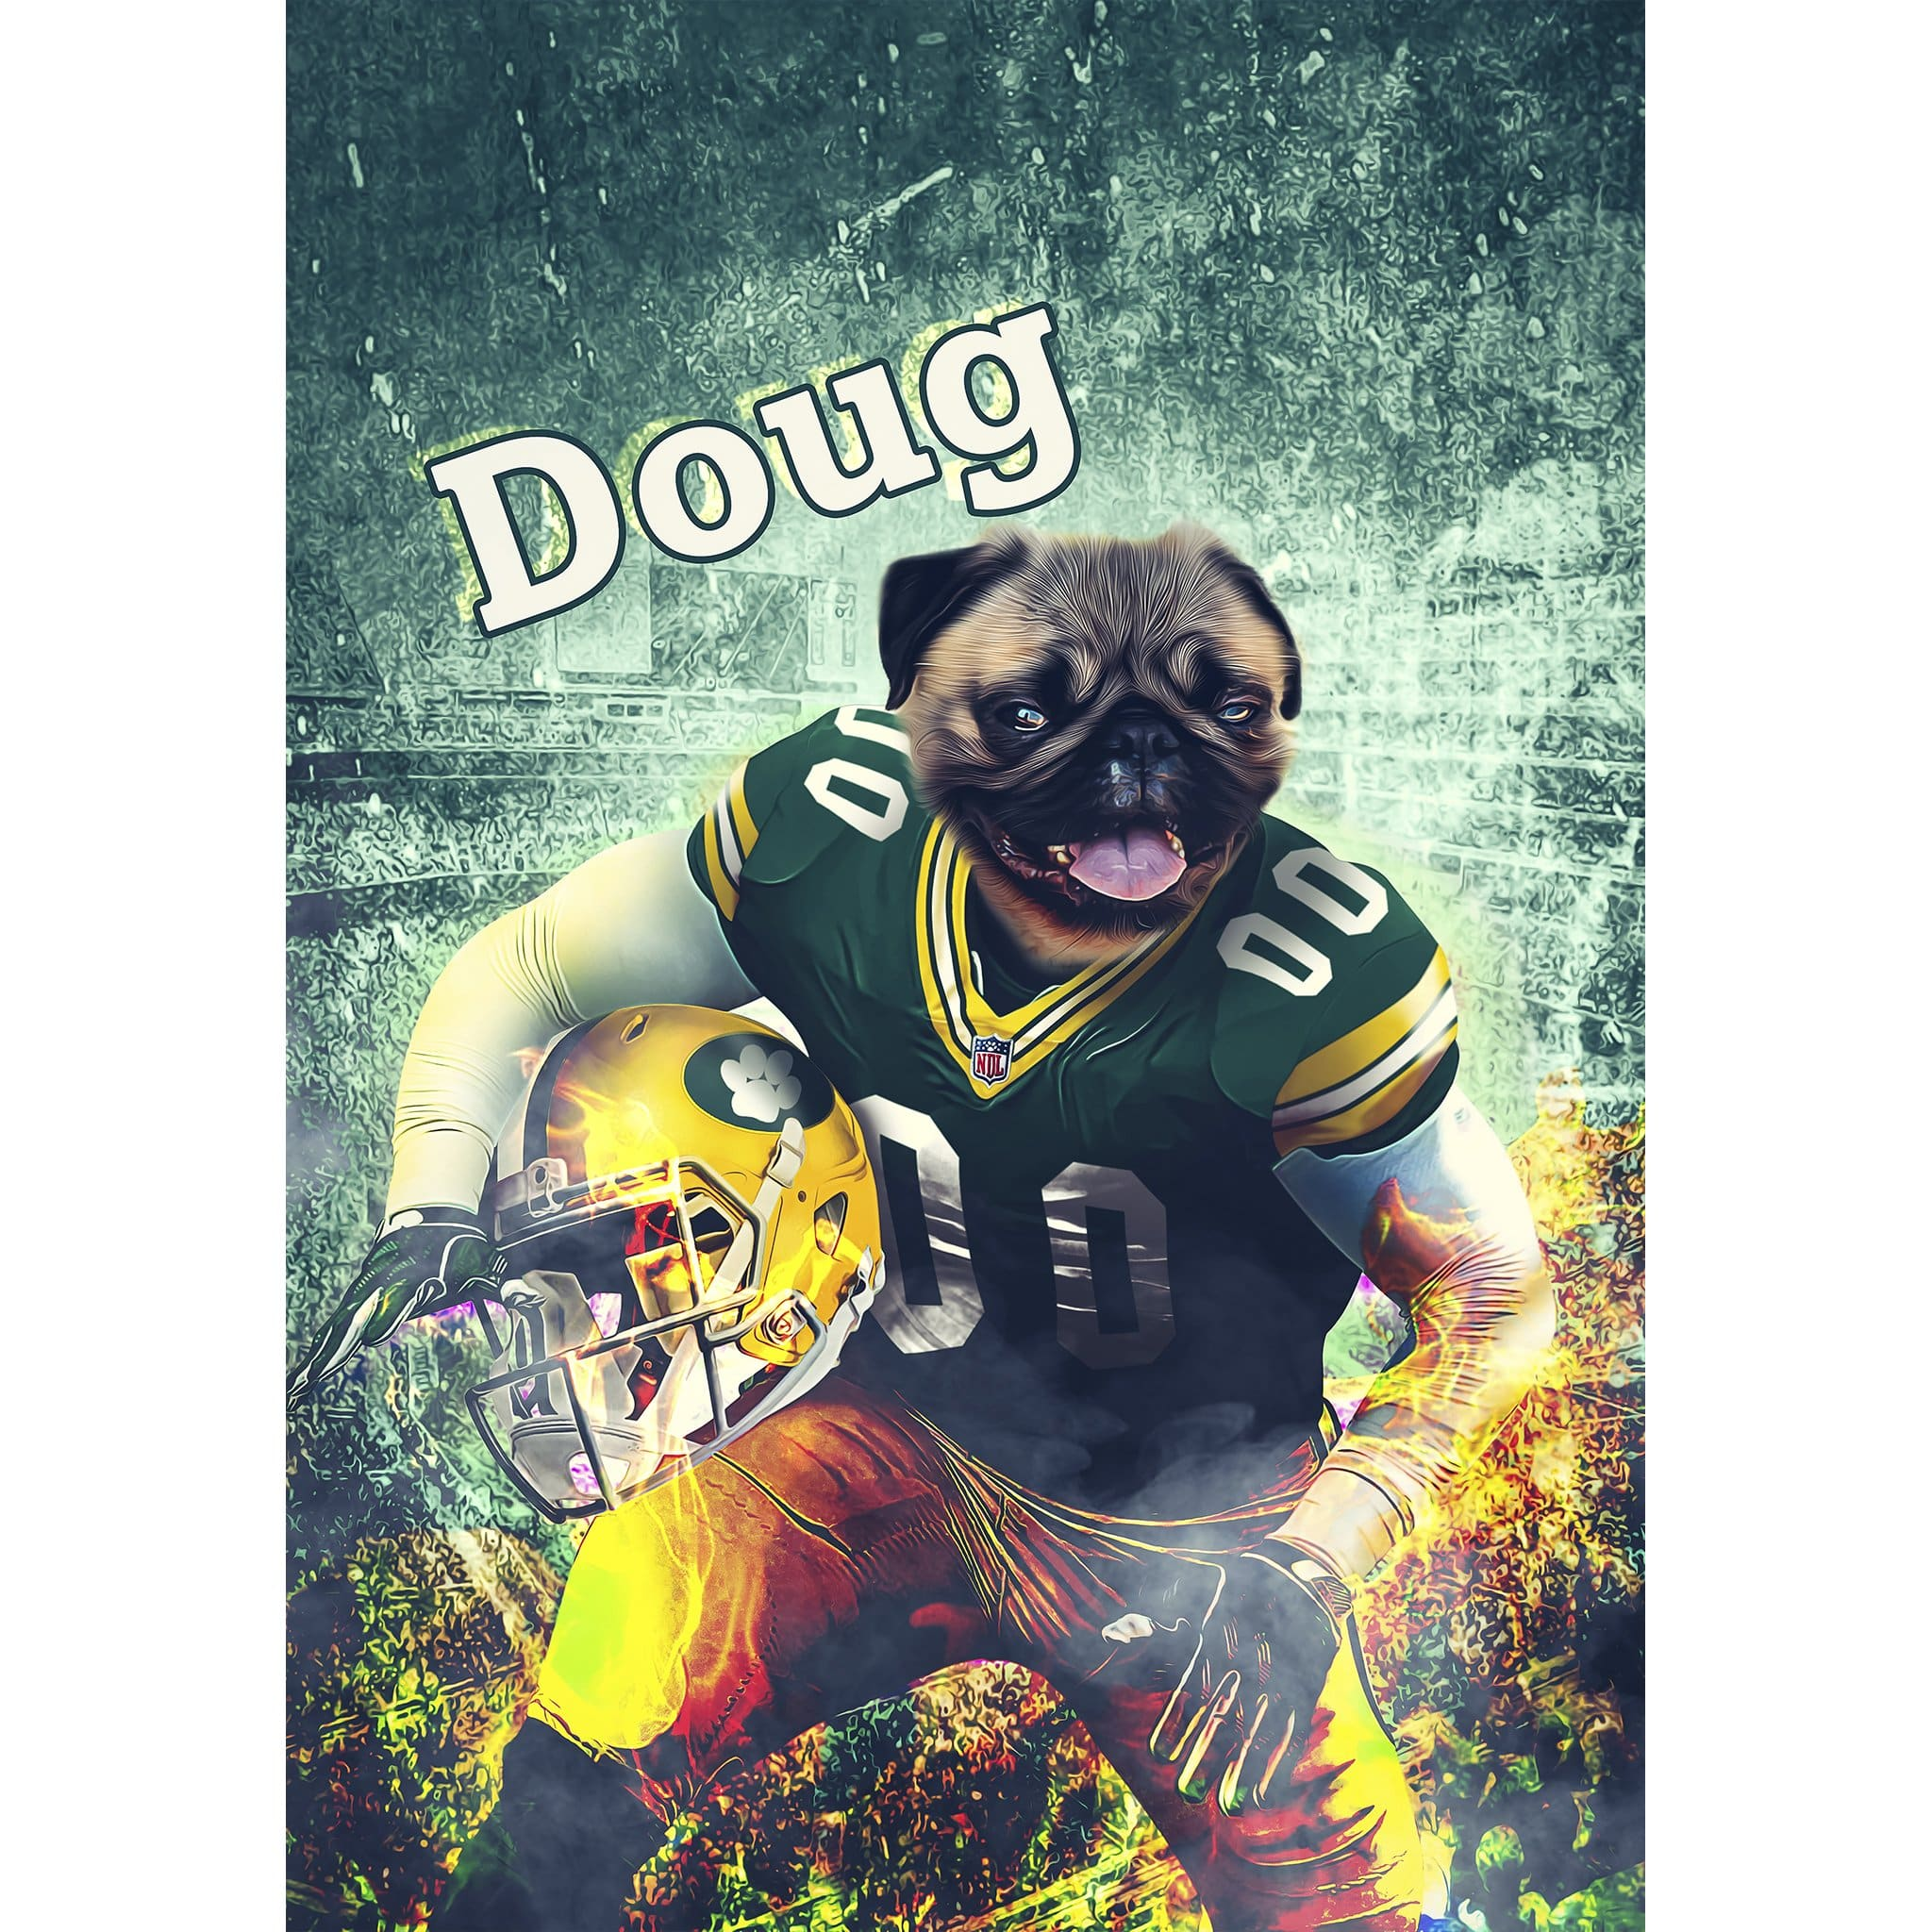 'Green Bay Doggos' Digital Portrait